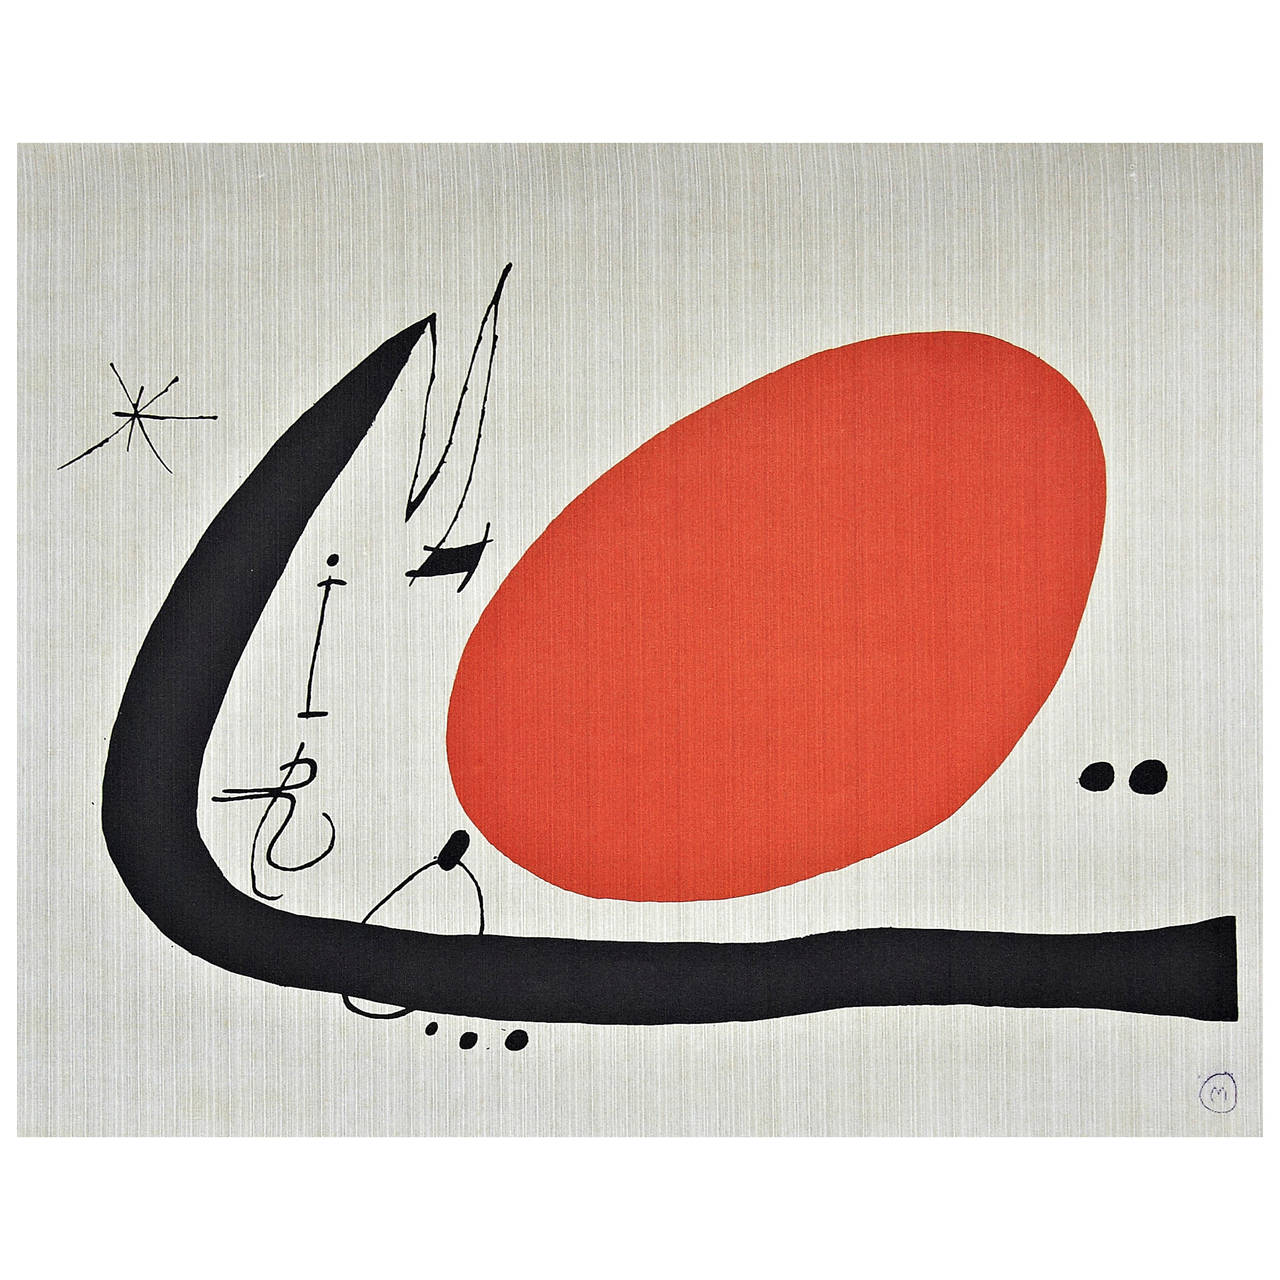 Joan Mir 243 Lithography In Textil Fabric 1970 At 1stdibs